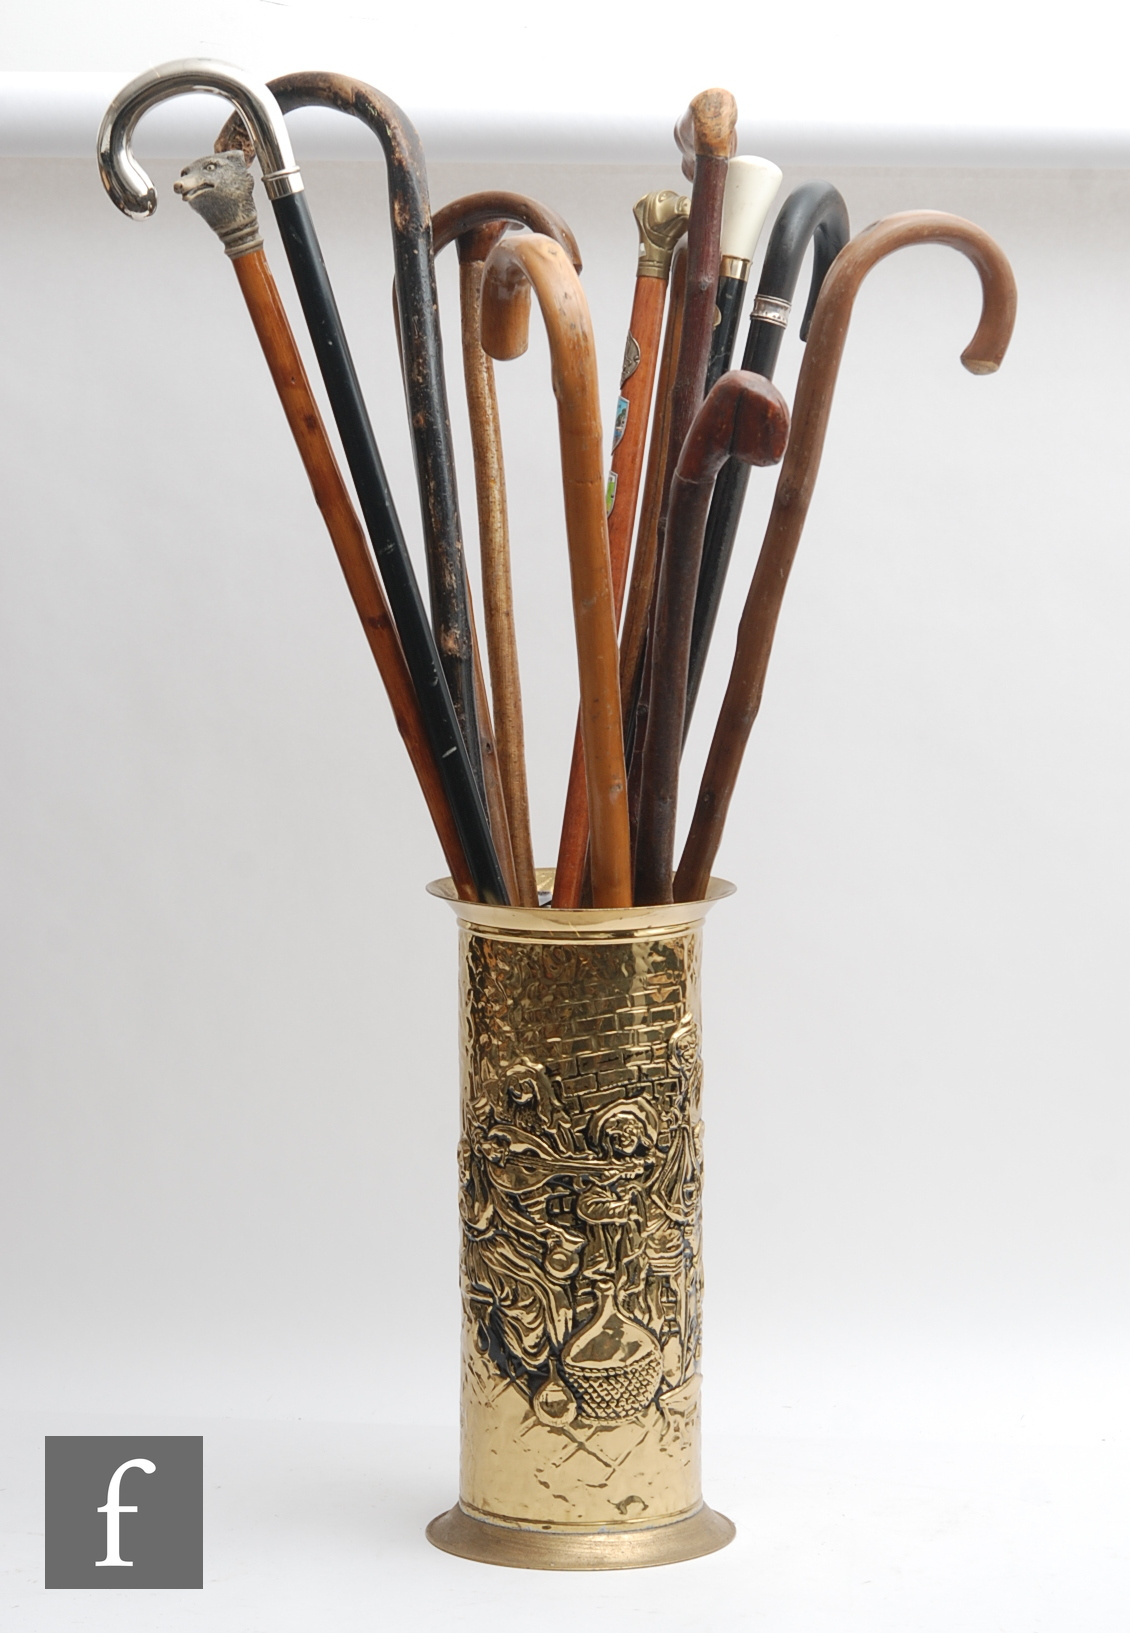 A collection of thirteen walking sticks to include animal, rootwood, brass examples, all housed in a